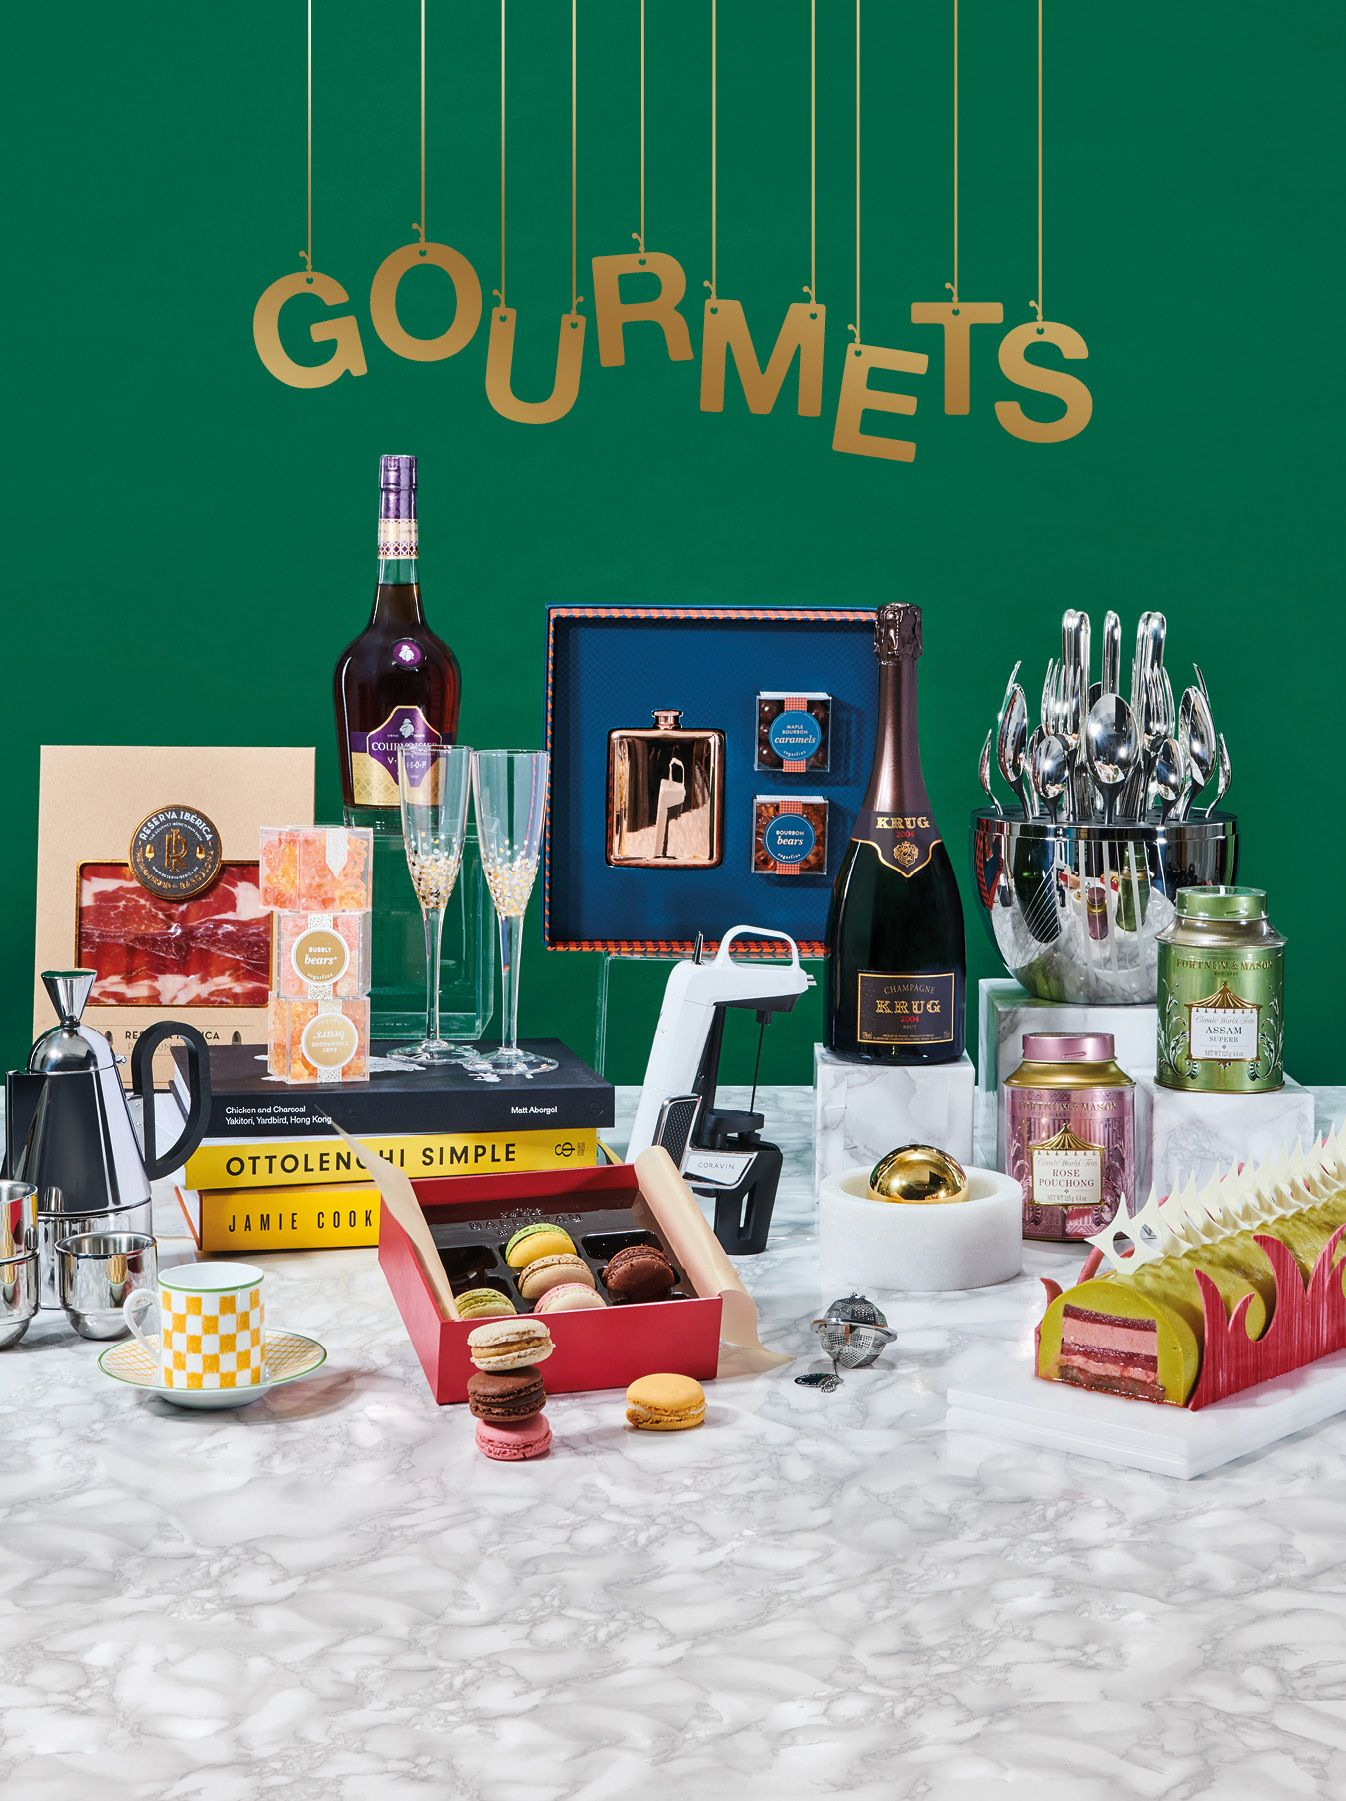 20 Gourmet Christmas Gift Ideas For Food Lovers